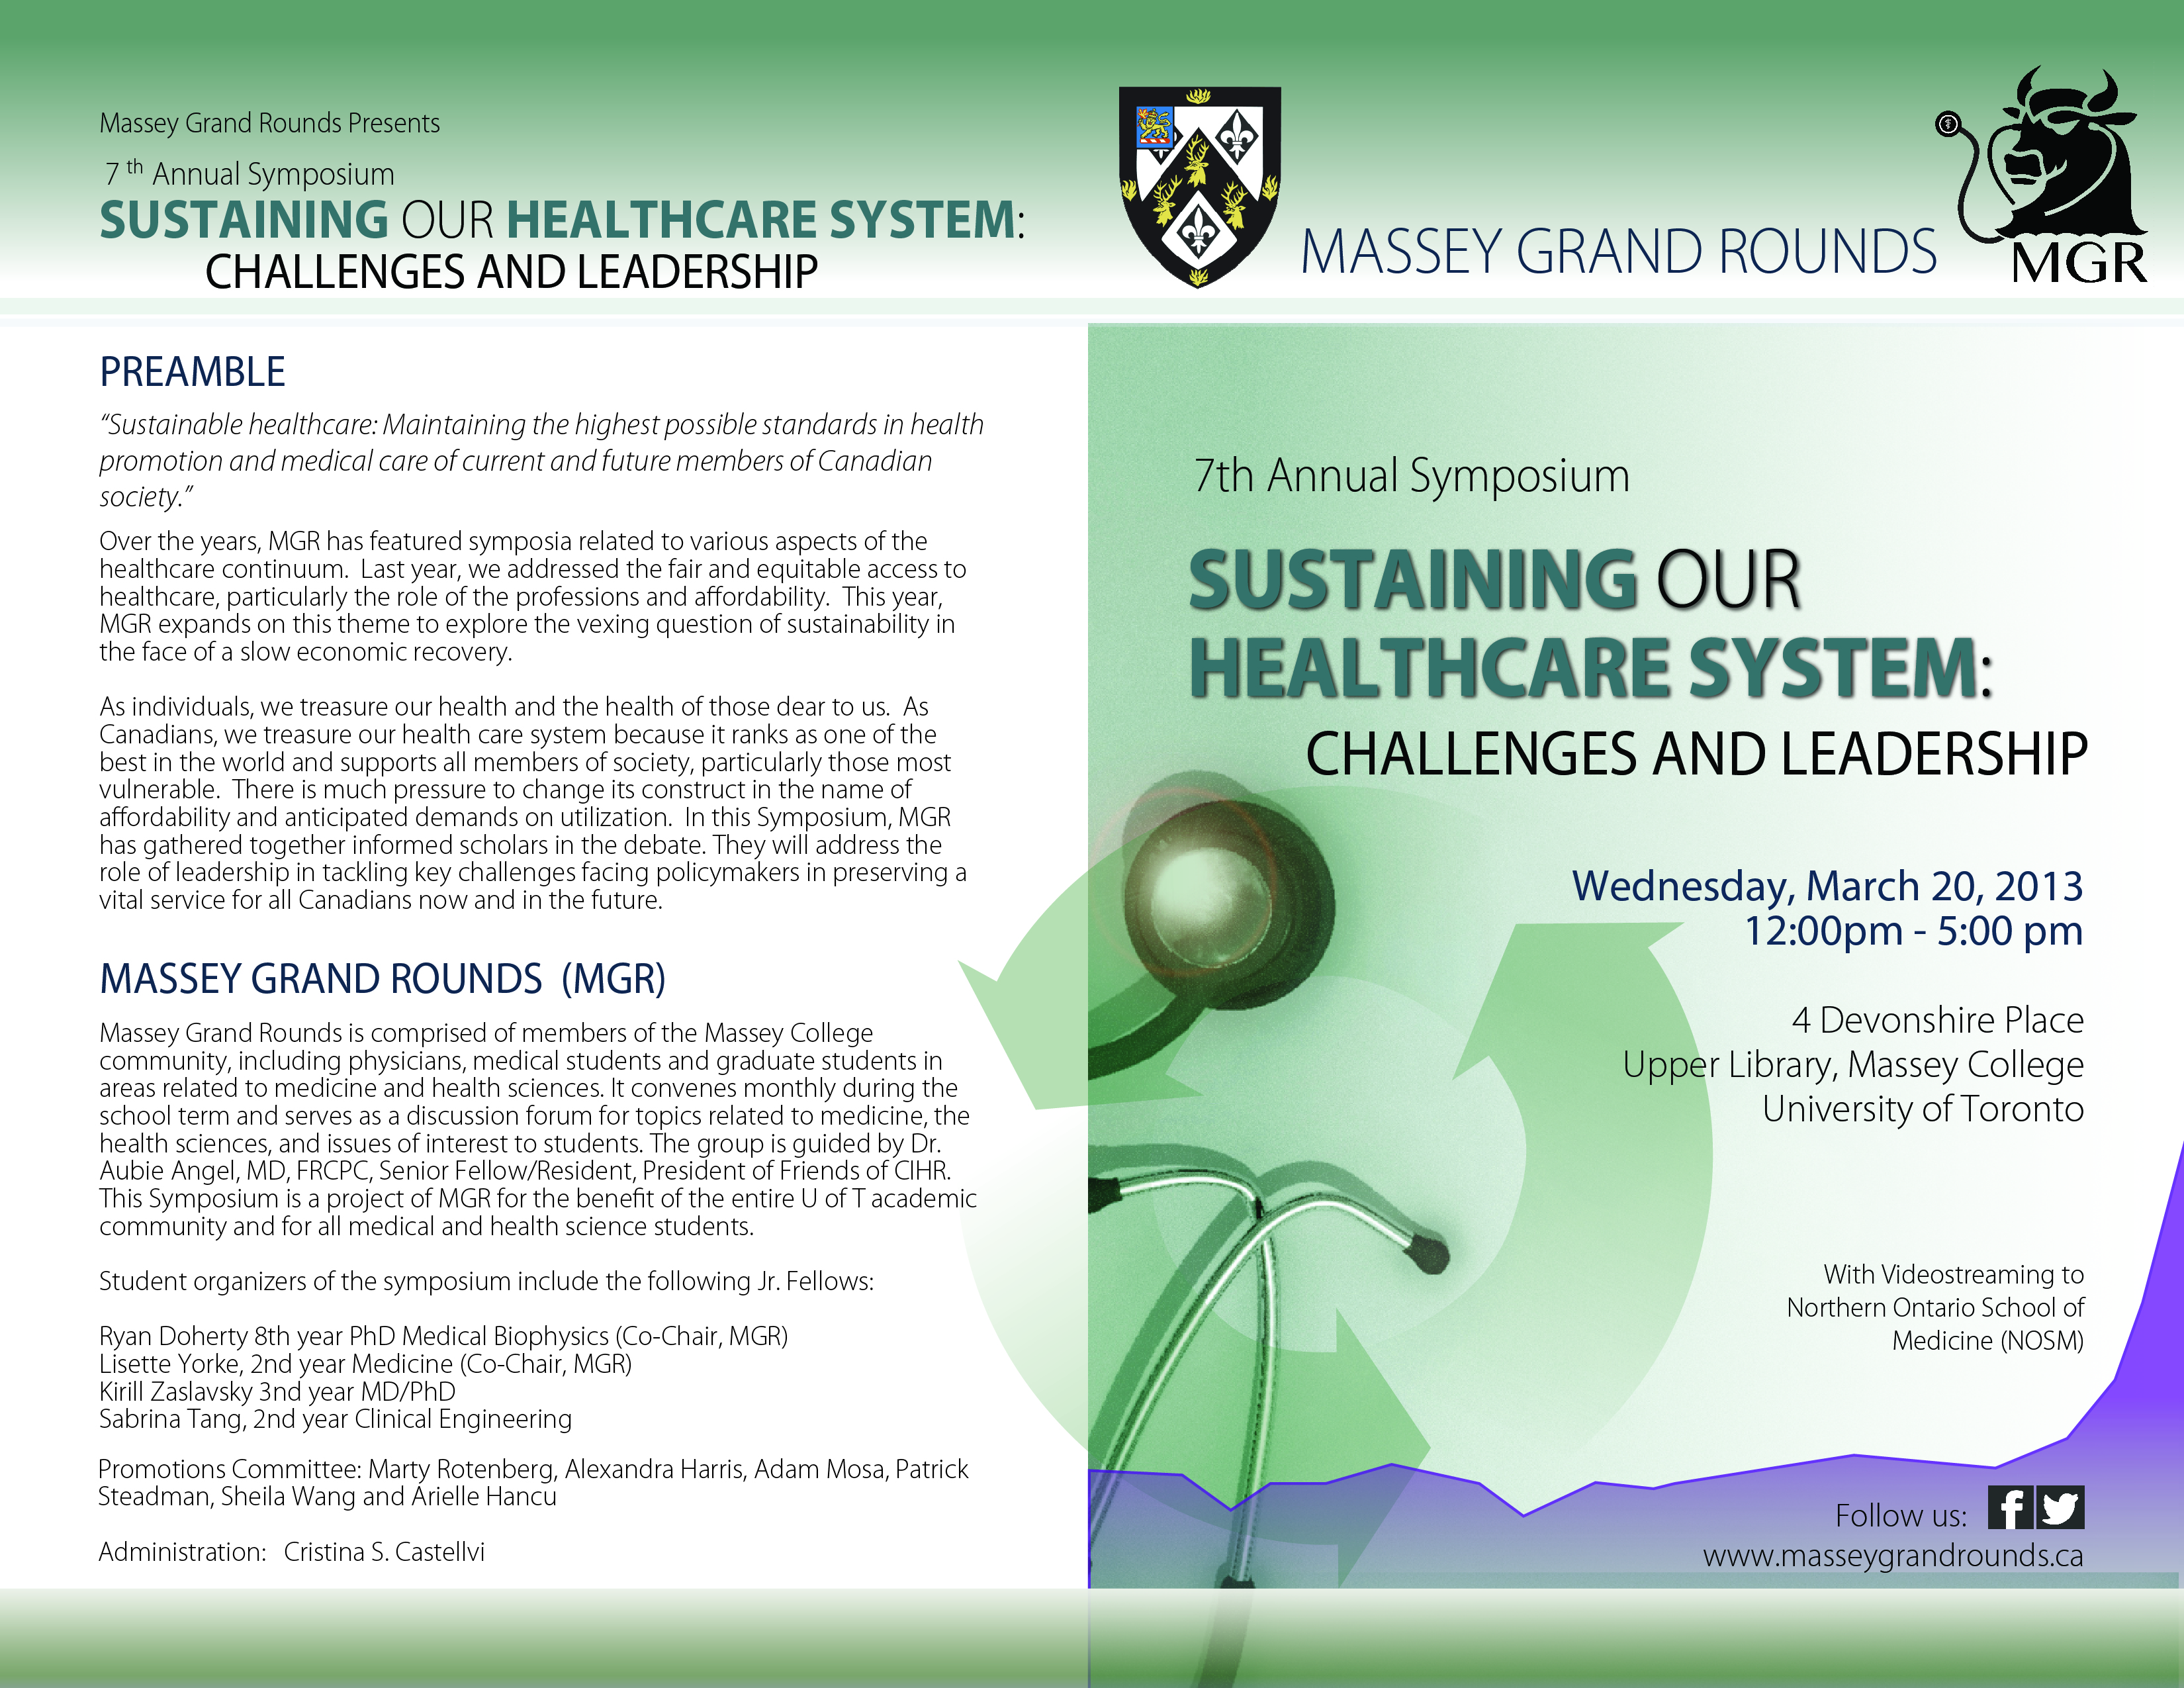 Brochure - 2013 Massey Grand Rounds Symposium - Front & Back Cover